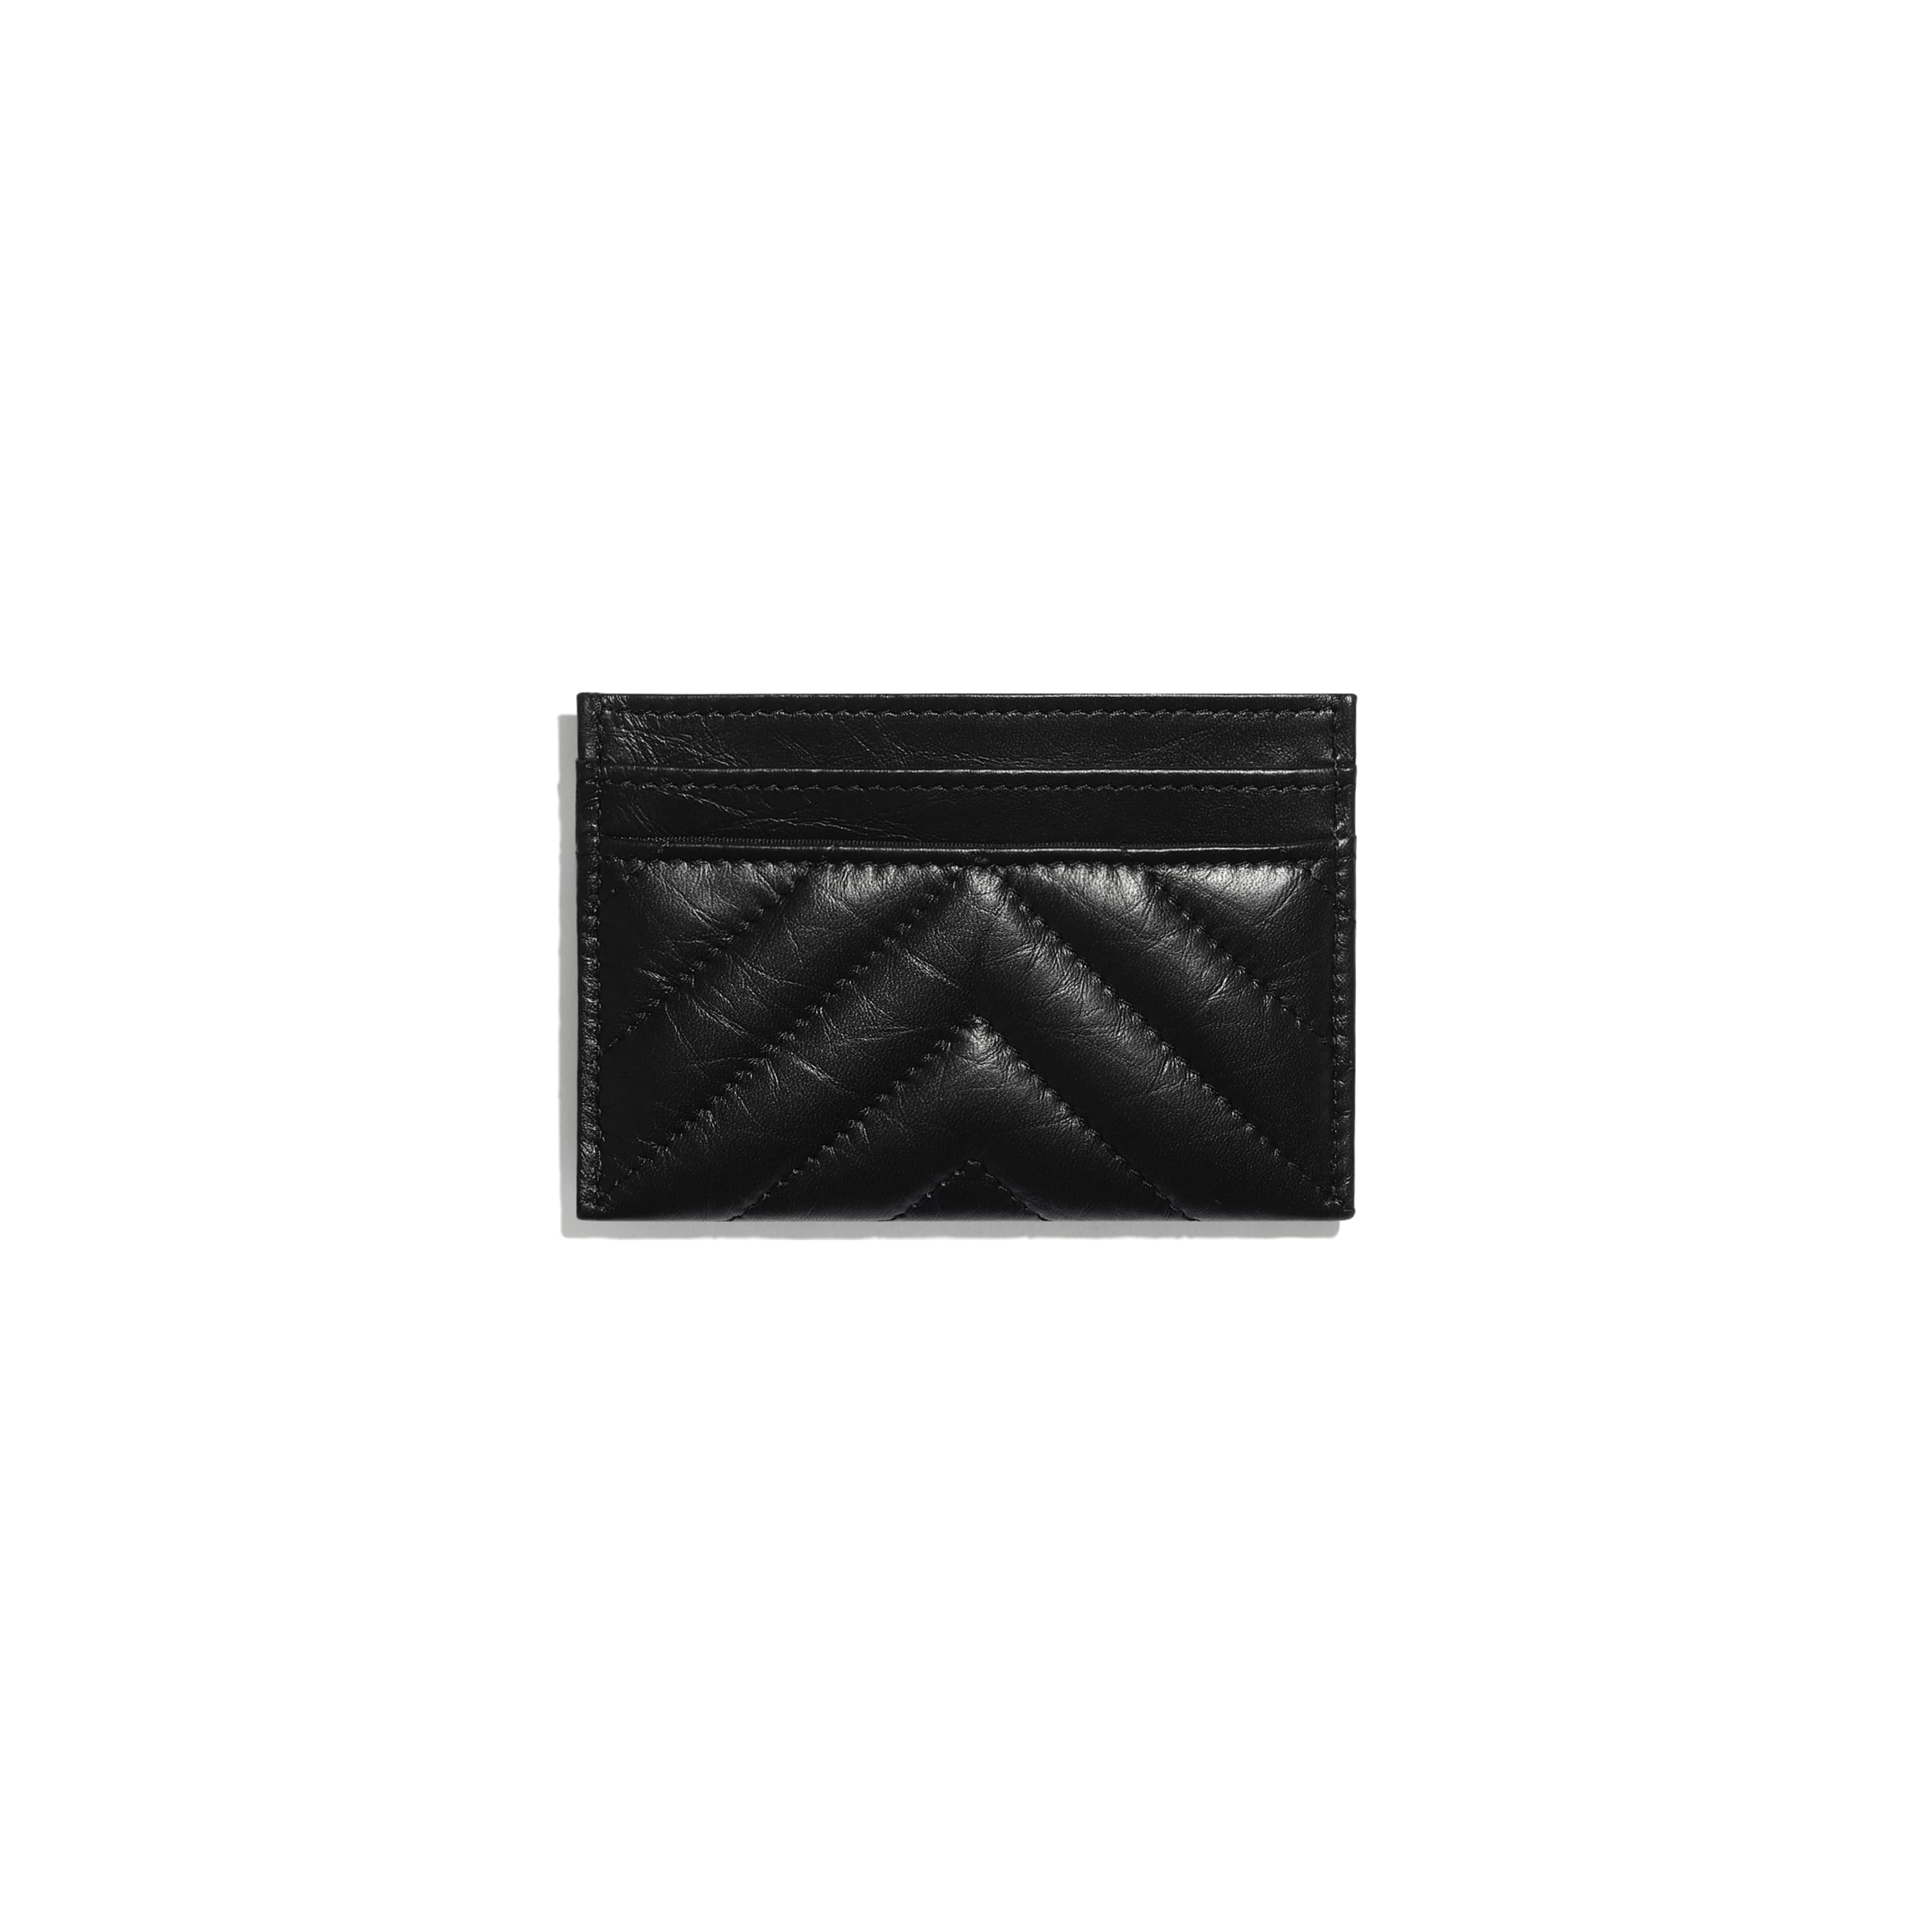 2.55 Card Holder - Black - Aged Calfskin & Black Metal - CHANEL - Alternative view - see standard sized version